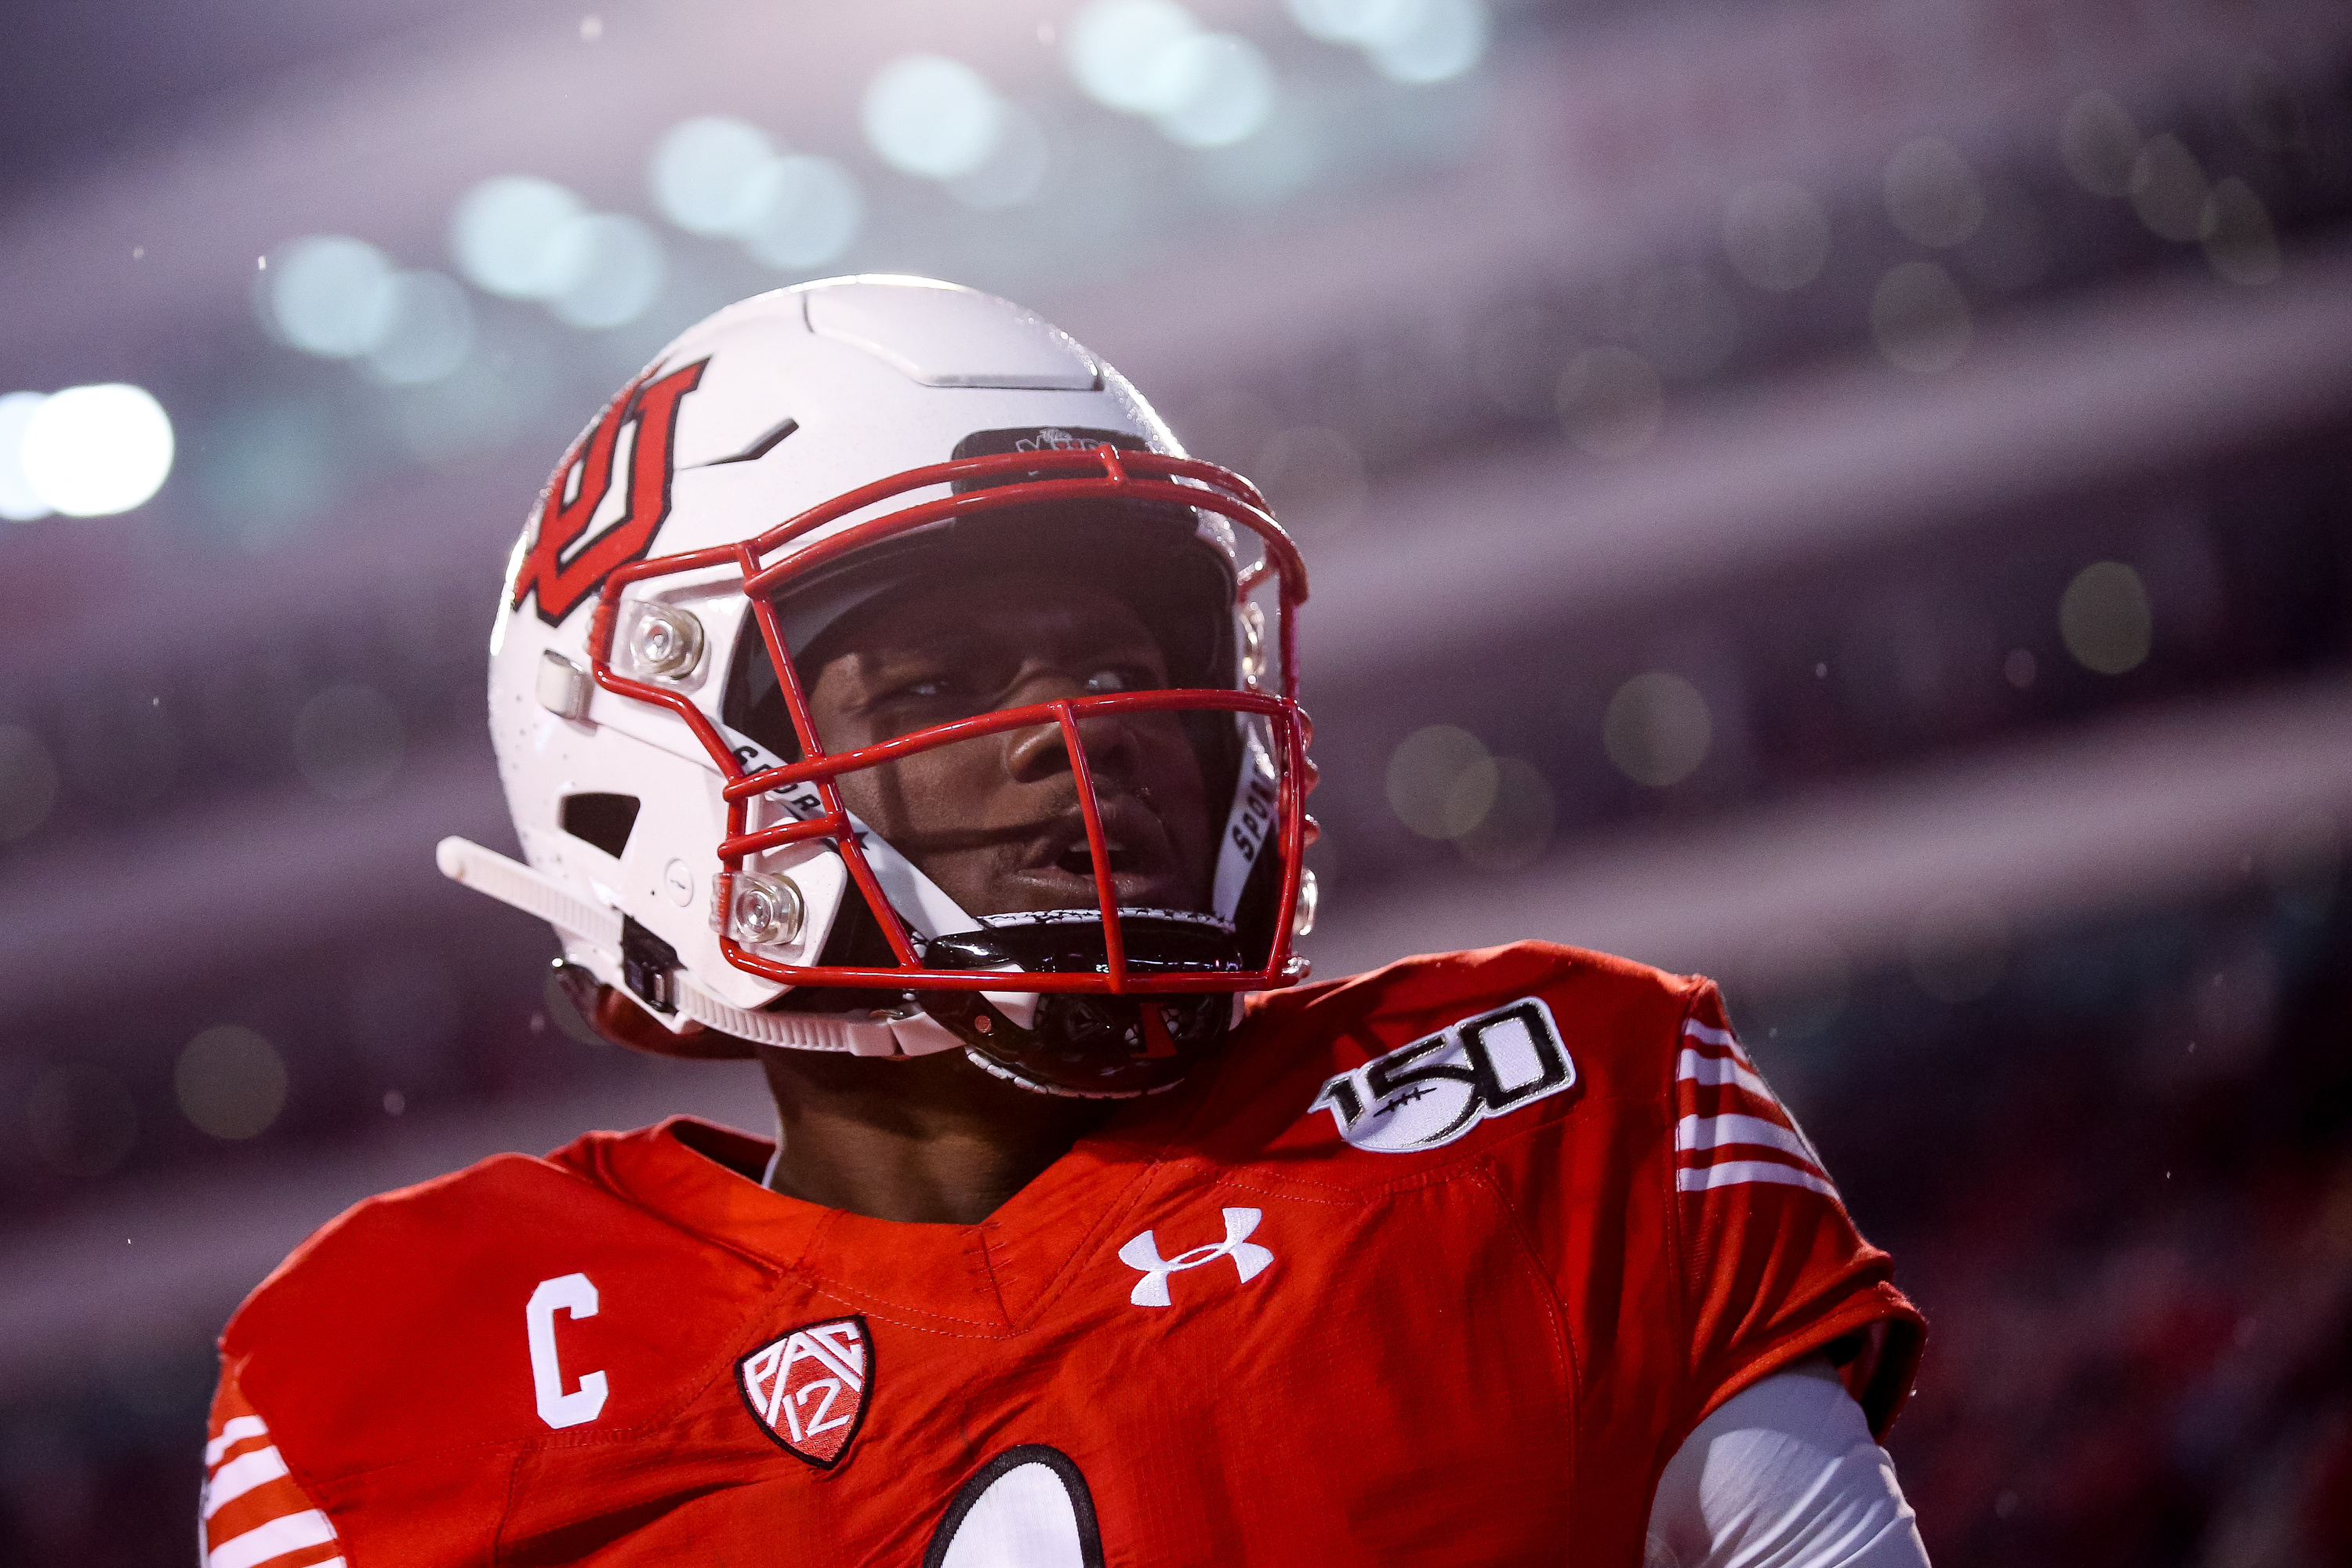 Utah Utes quarterback Tyler Huntley (1) celebrates after running the ball 15 yards for a touchdown, putting the Utes up 21-13 over the Washington State Cougars after the PAT, at Rice-Eccles Stadium in Salt Lake City on Saturday, Sept. 28, 2019.